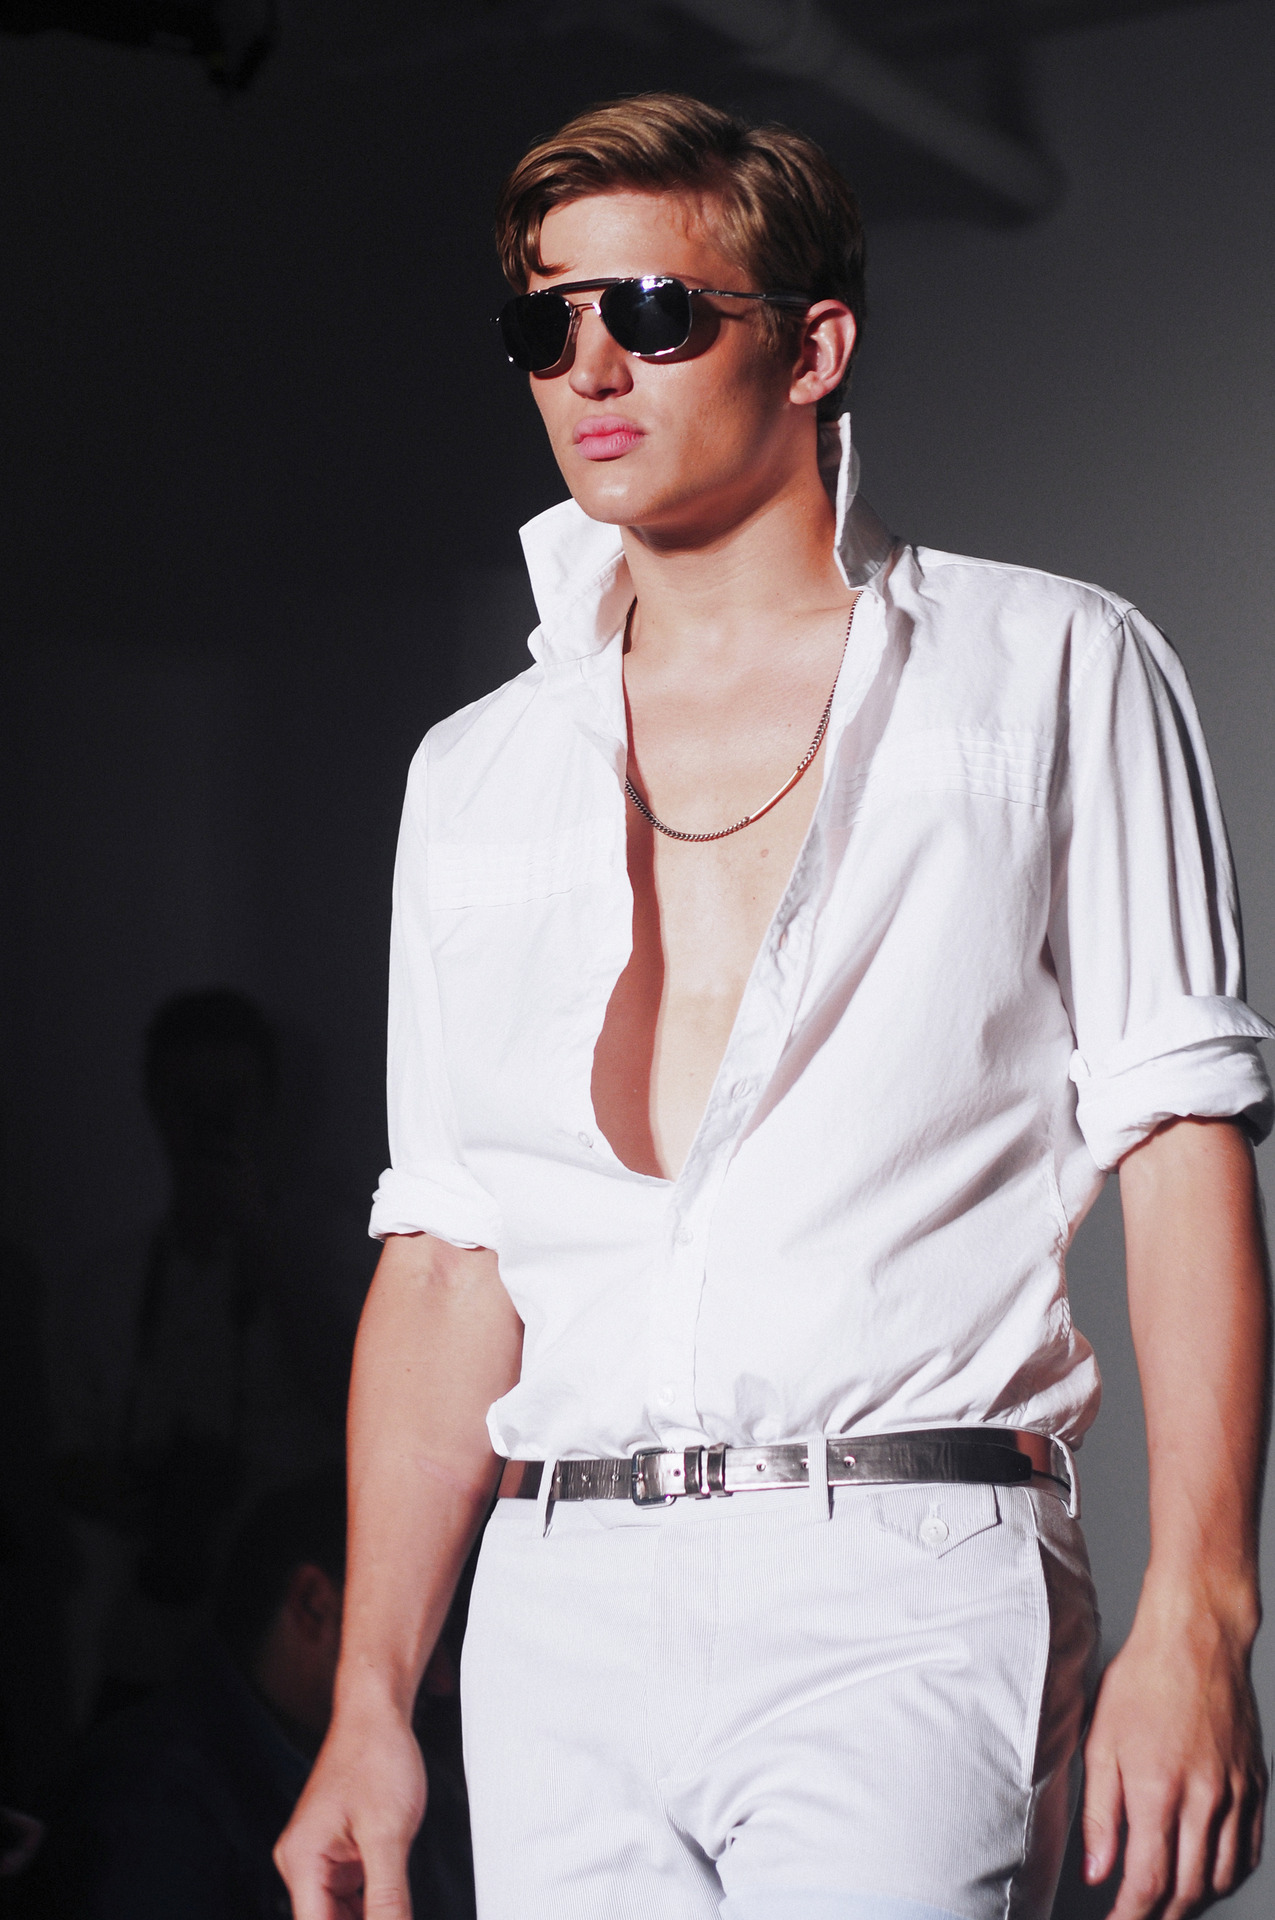 Michael Bastian runway show at Milk Studios